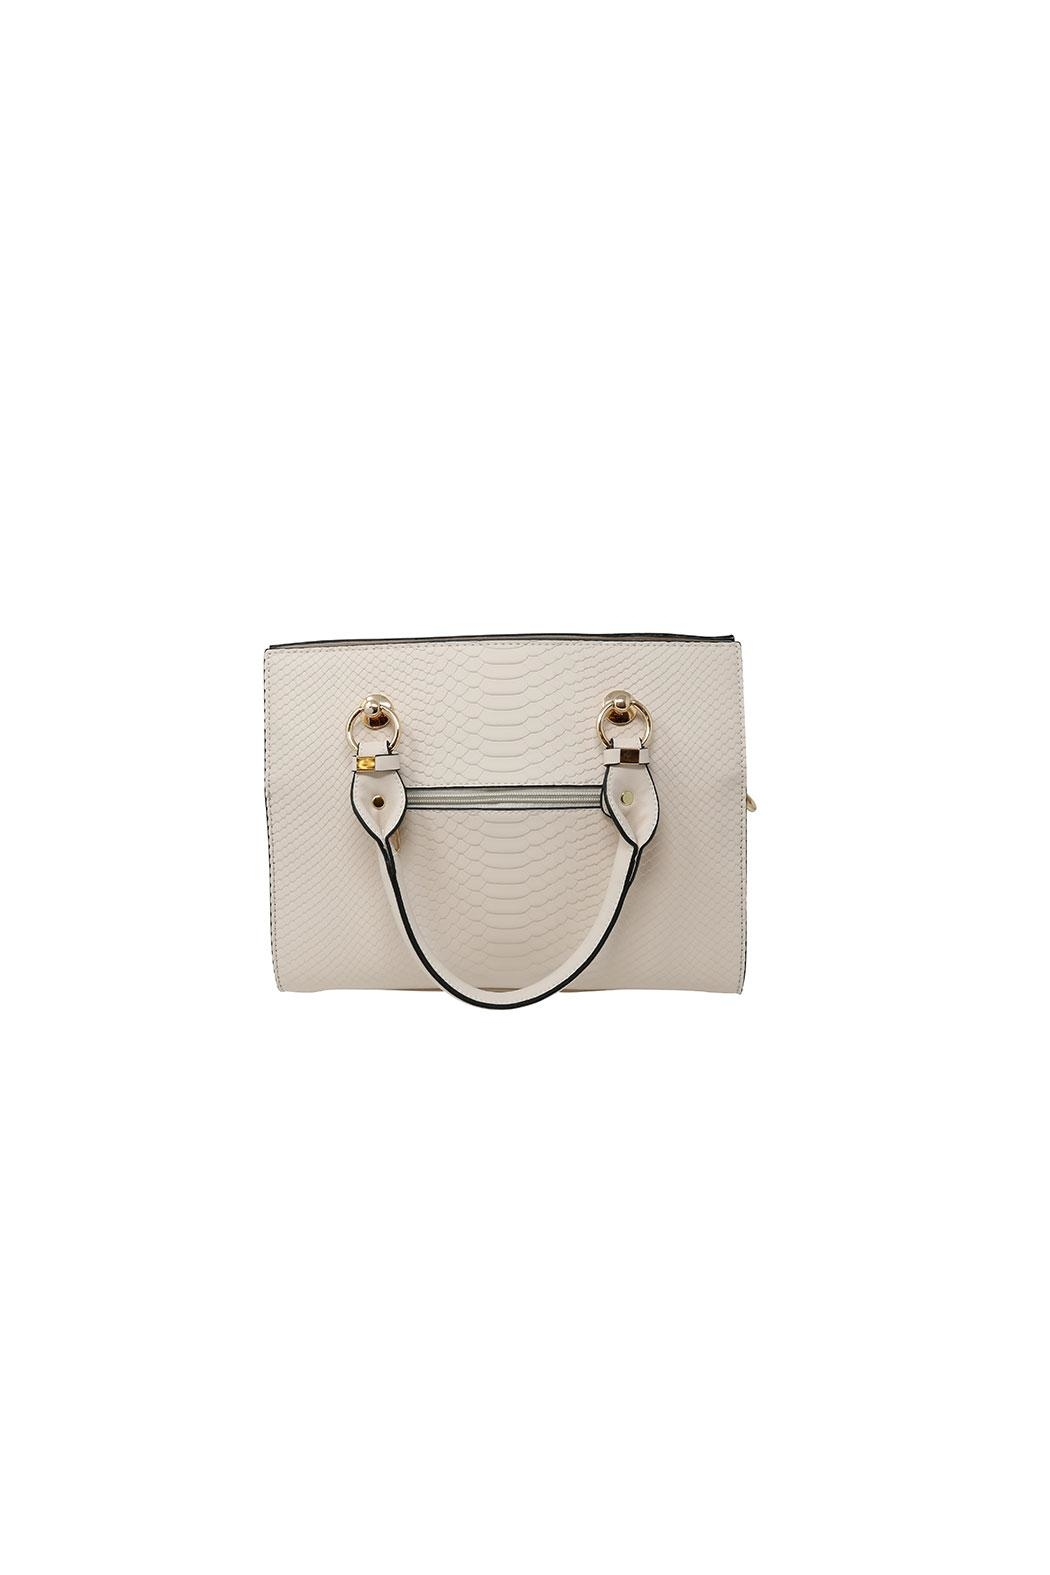 Nadya's Closet Faux Snakeskin Tote - Front Full Image